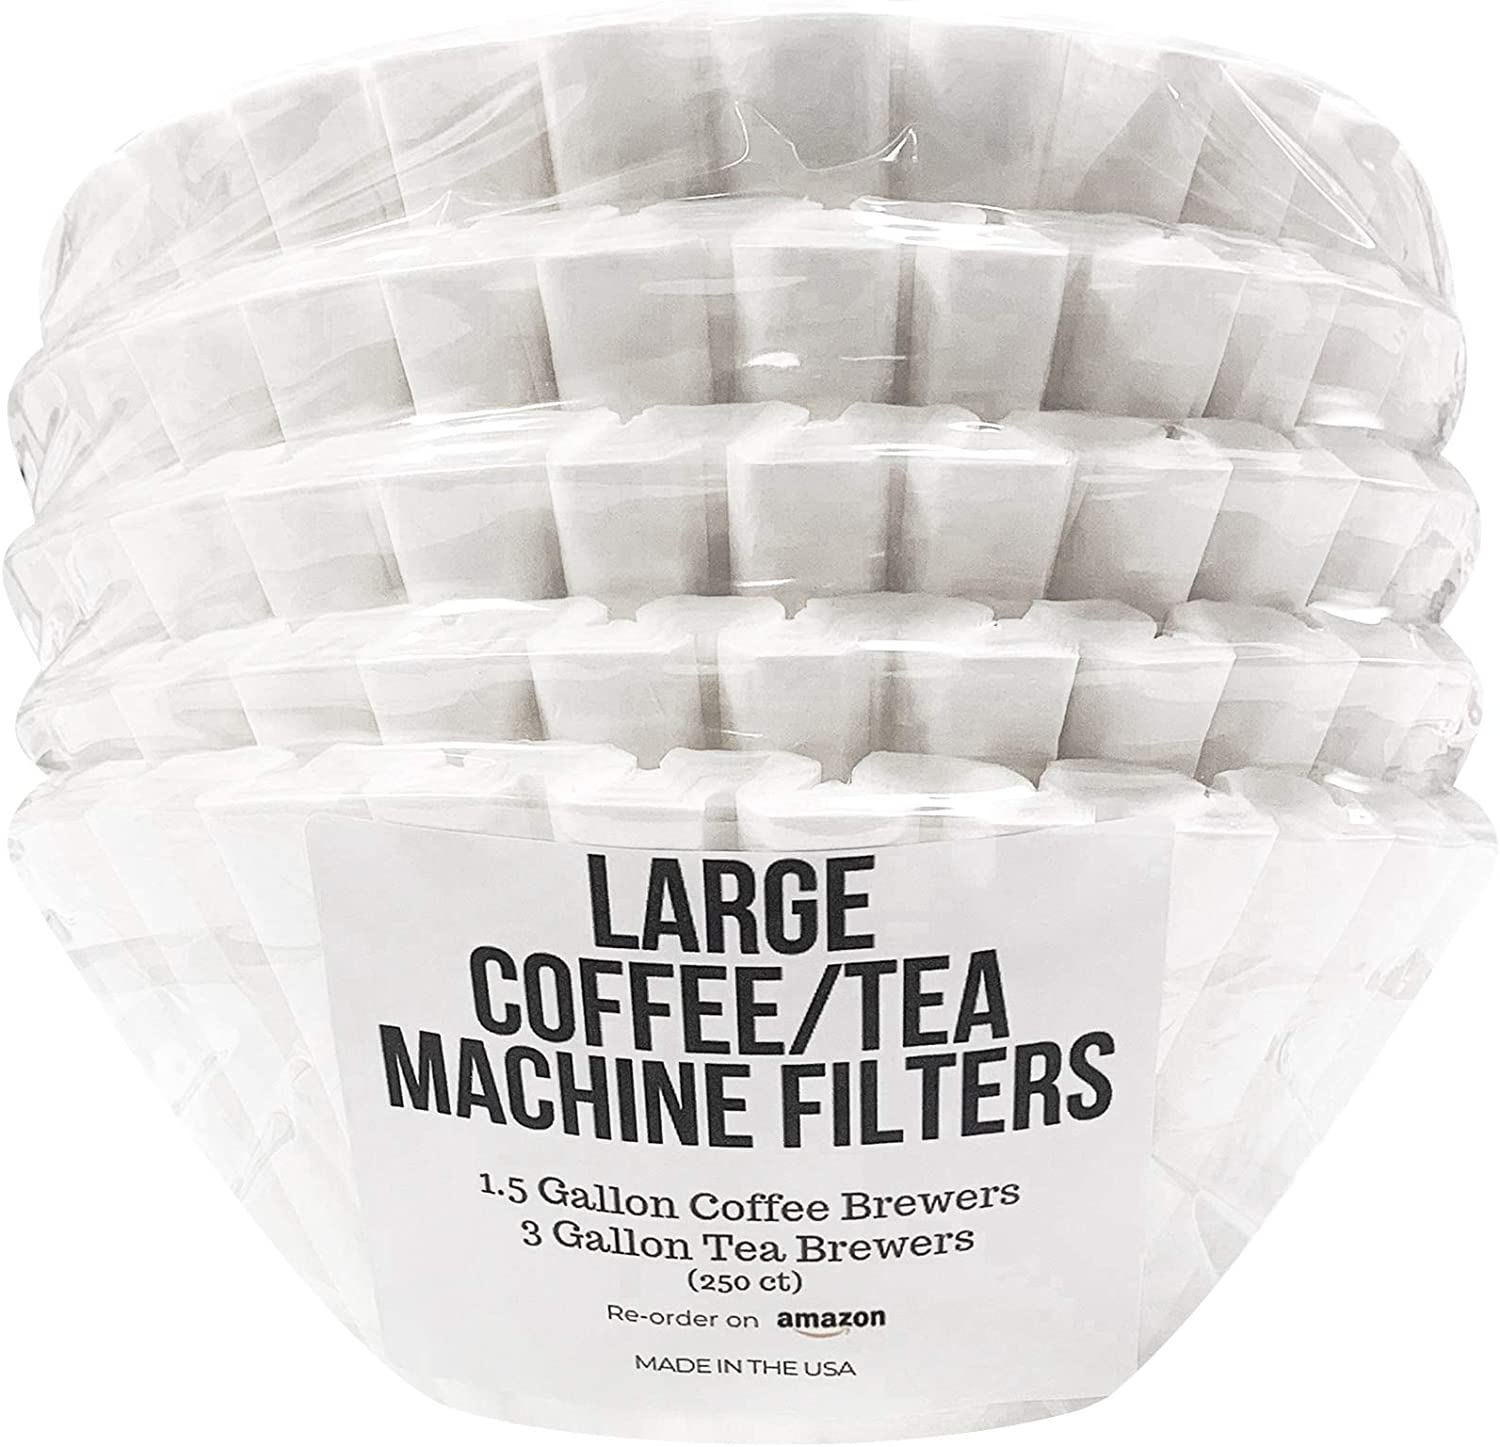 "DRINK KATY'S (13"" x 5"") Extra Large Coffee/Tea Filters for 1.5 to 3 Gallon Commercial Machines - Compatible with Bunn, Fetco & Curtis Brewers - Quality, Easy, No Mess - Bulk Pack"